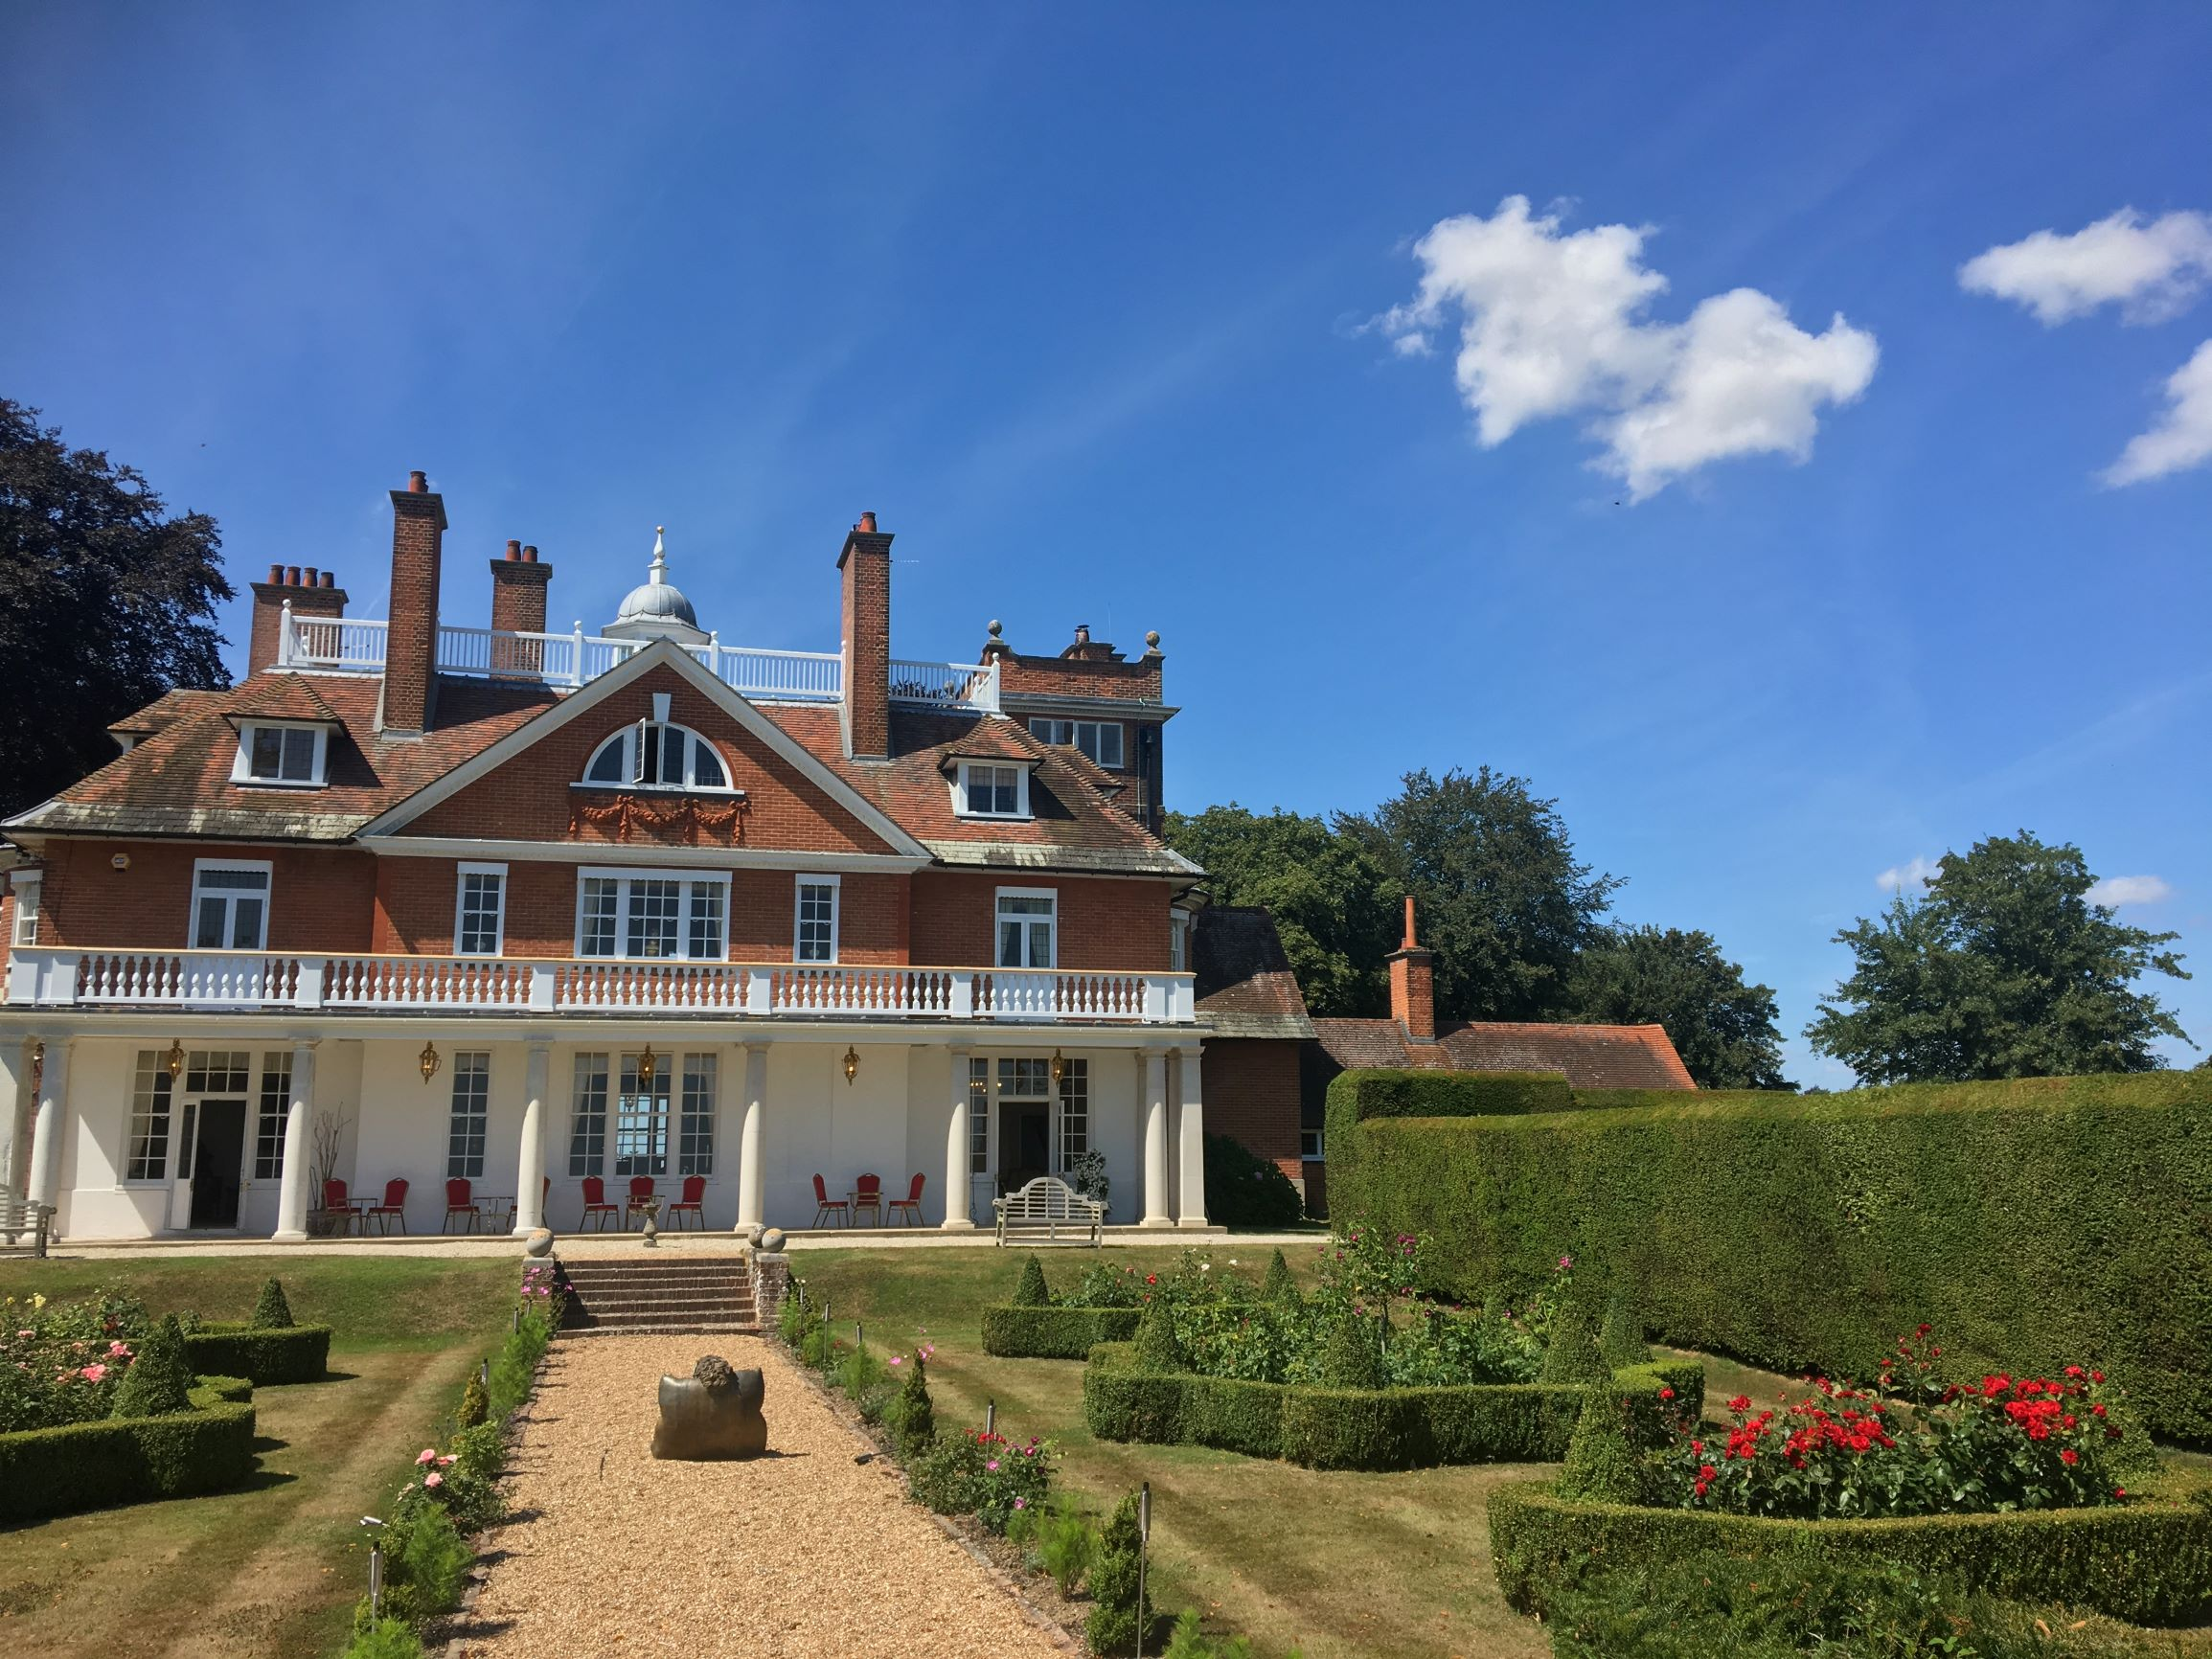 Saltcote Place Wedding venue under an hour from London